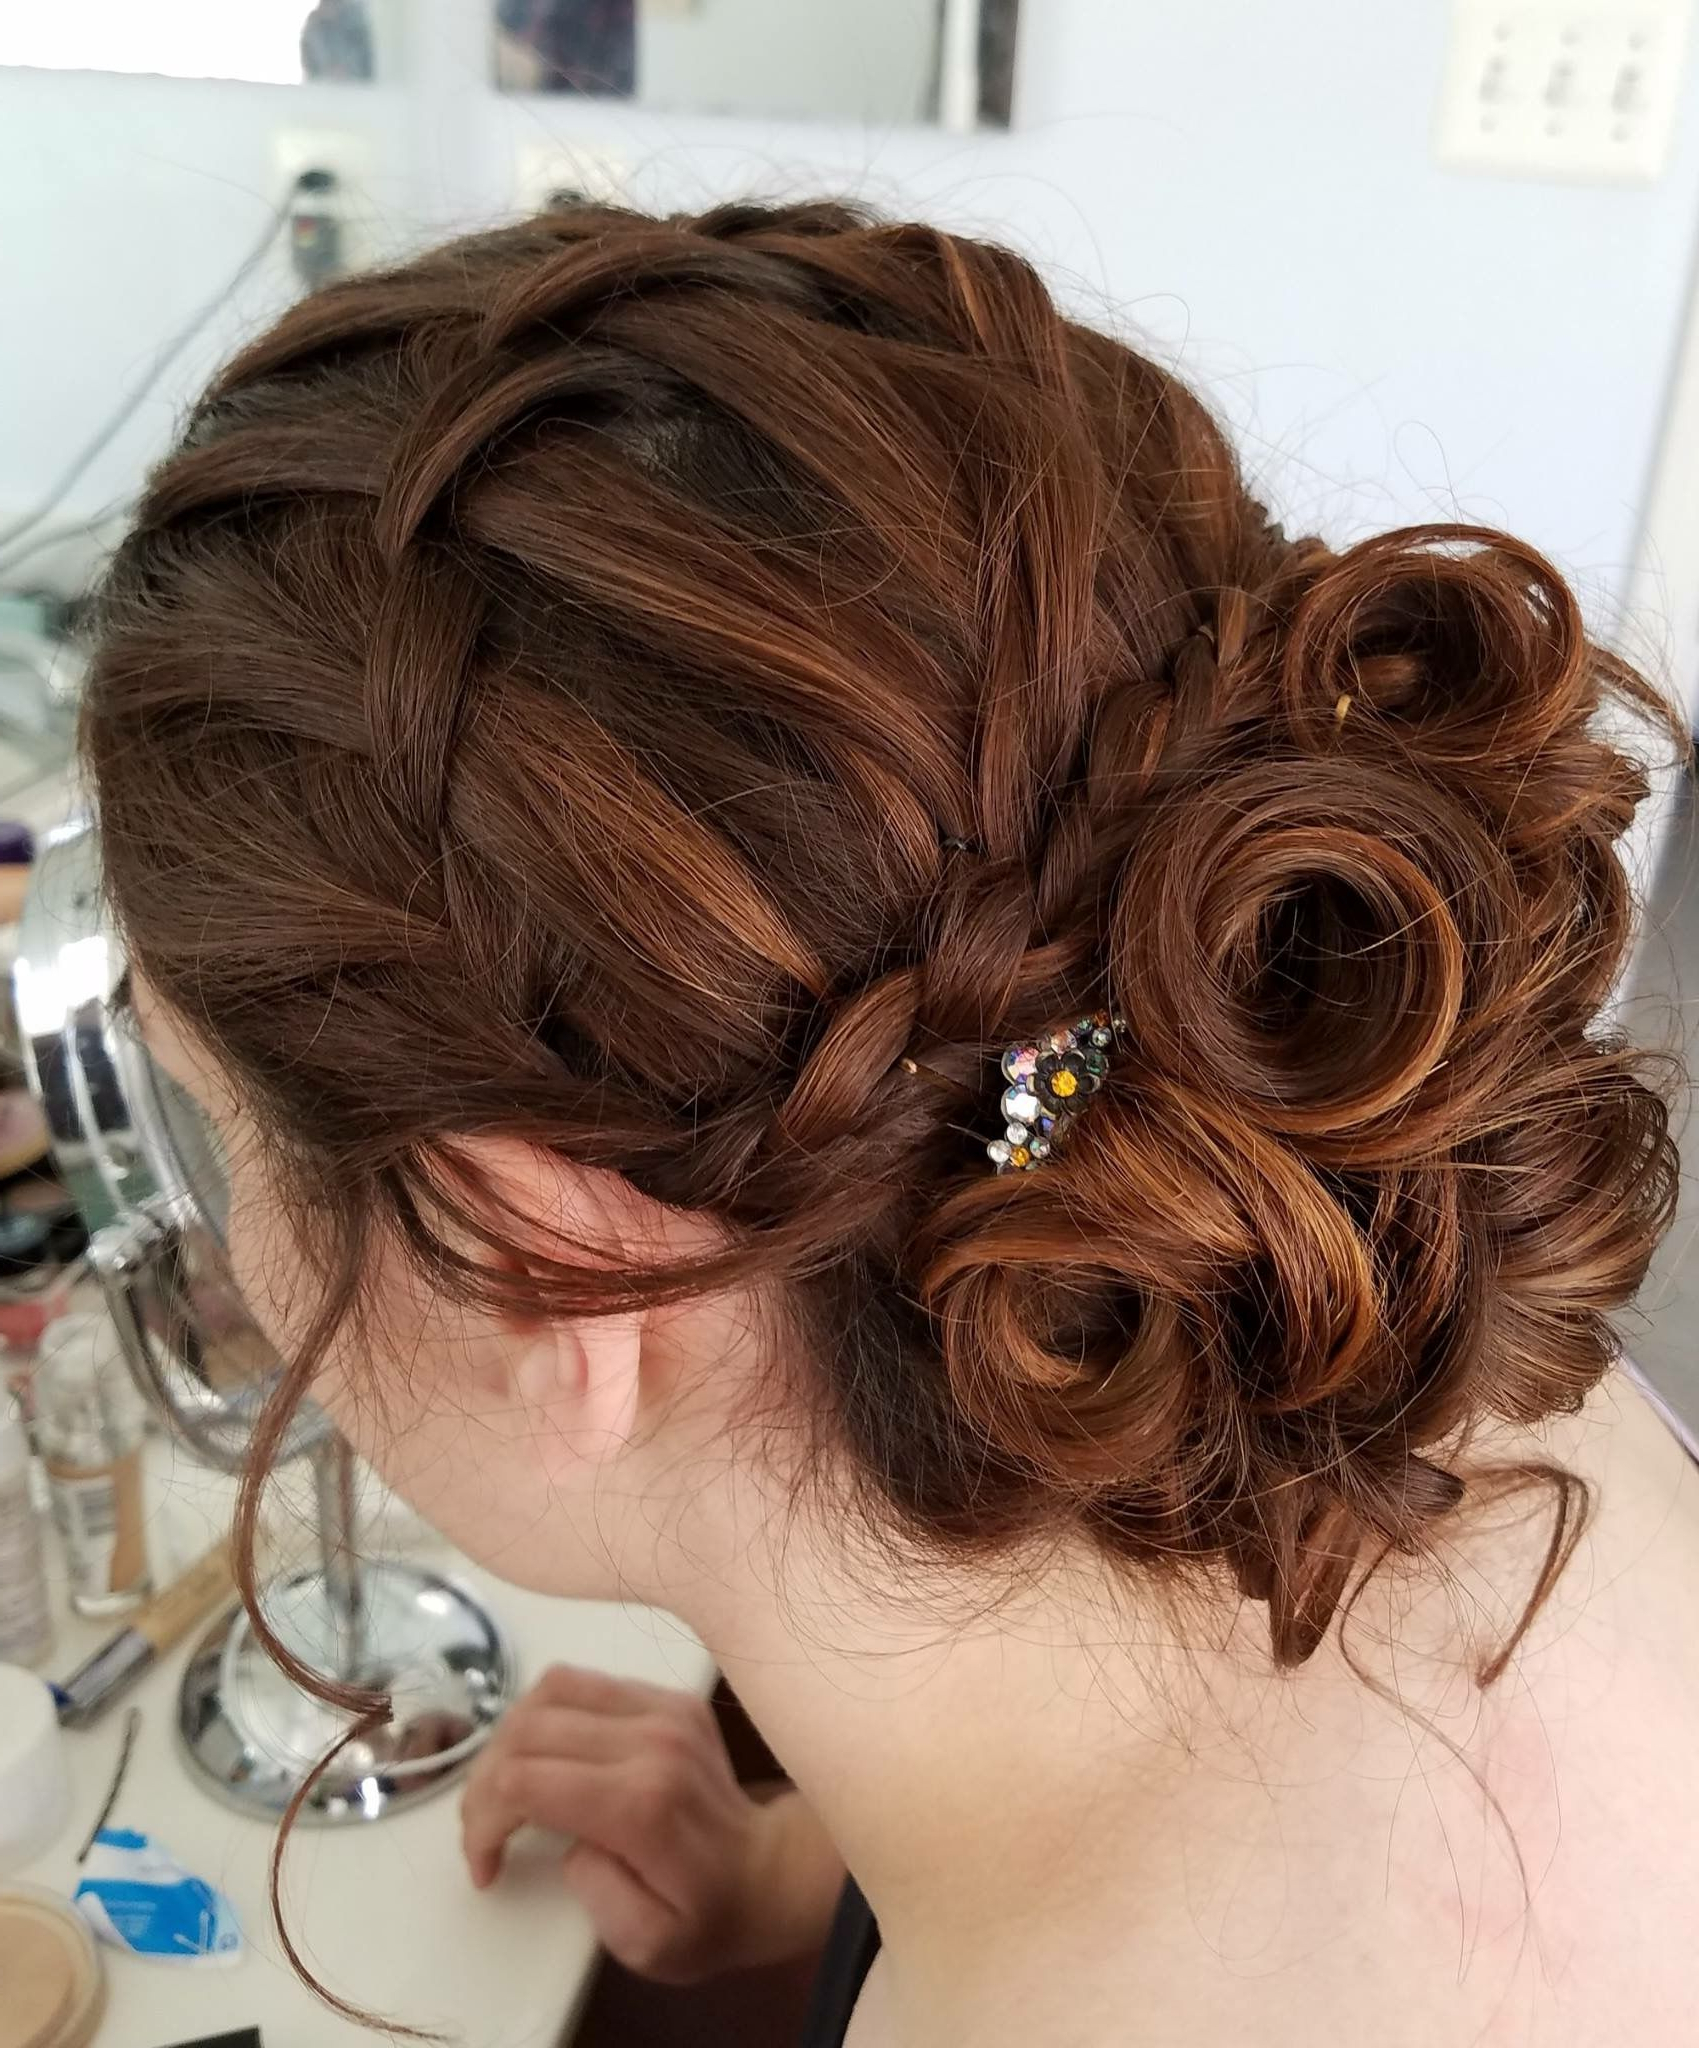 Hairstyles : Prom Hair Low Bun Updo Pinterest And With Hairstyles In Most Up To Date Volumized Low Chignon Prom Hairstyles (View 10 of 20)